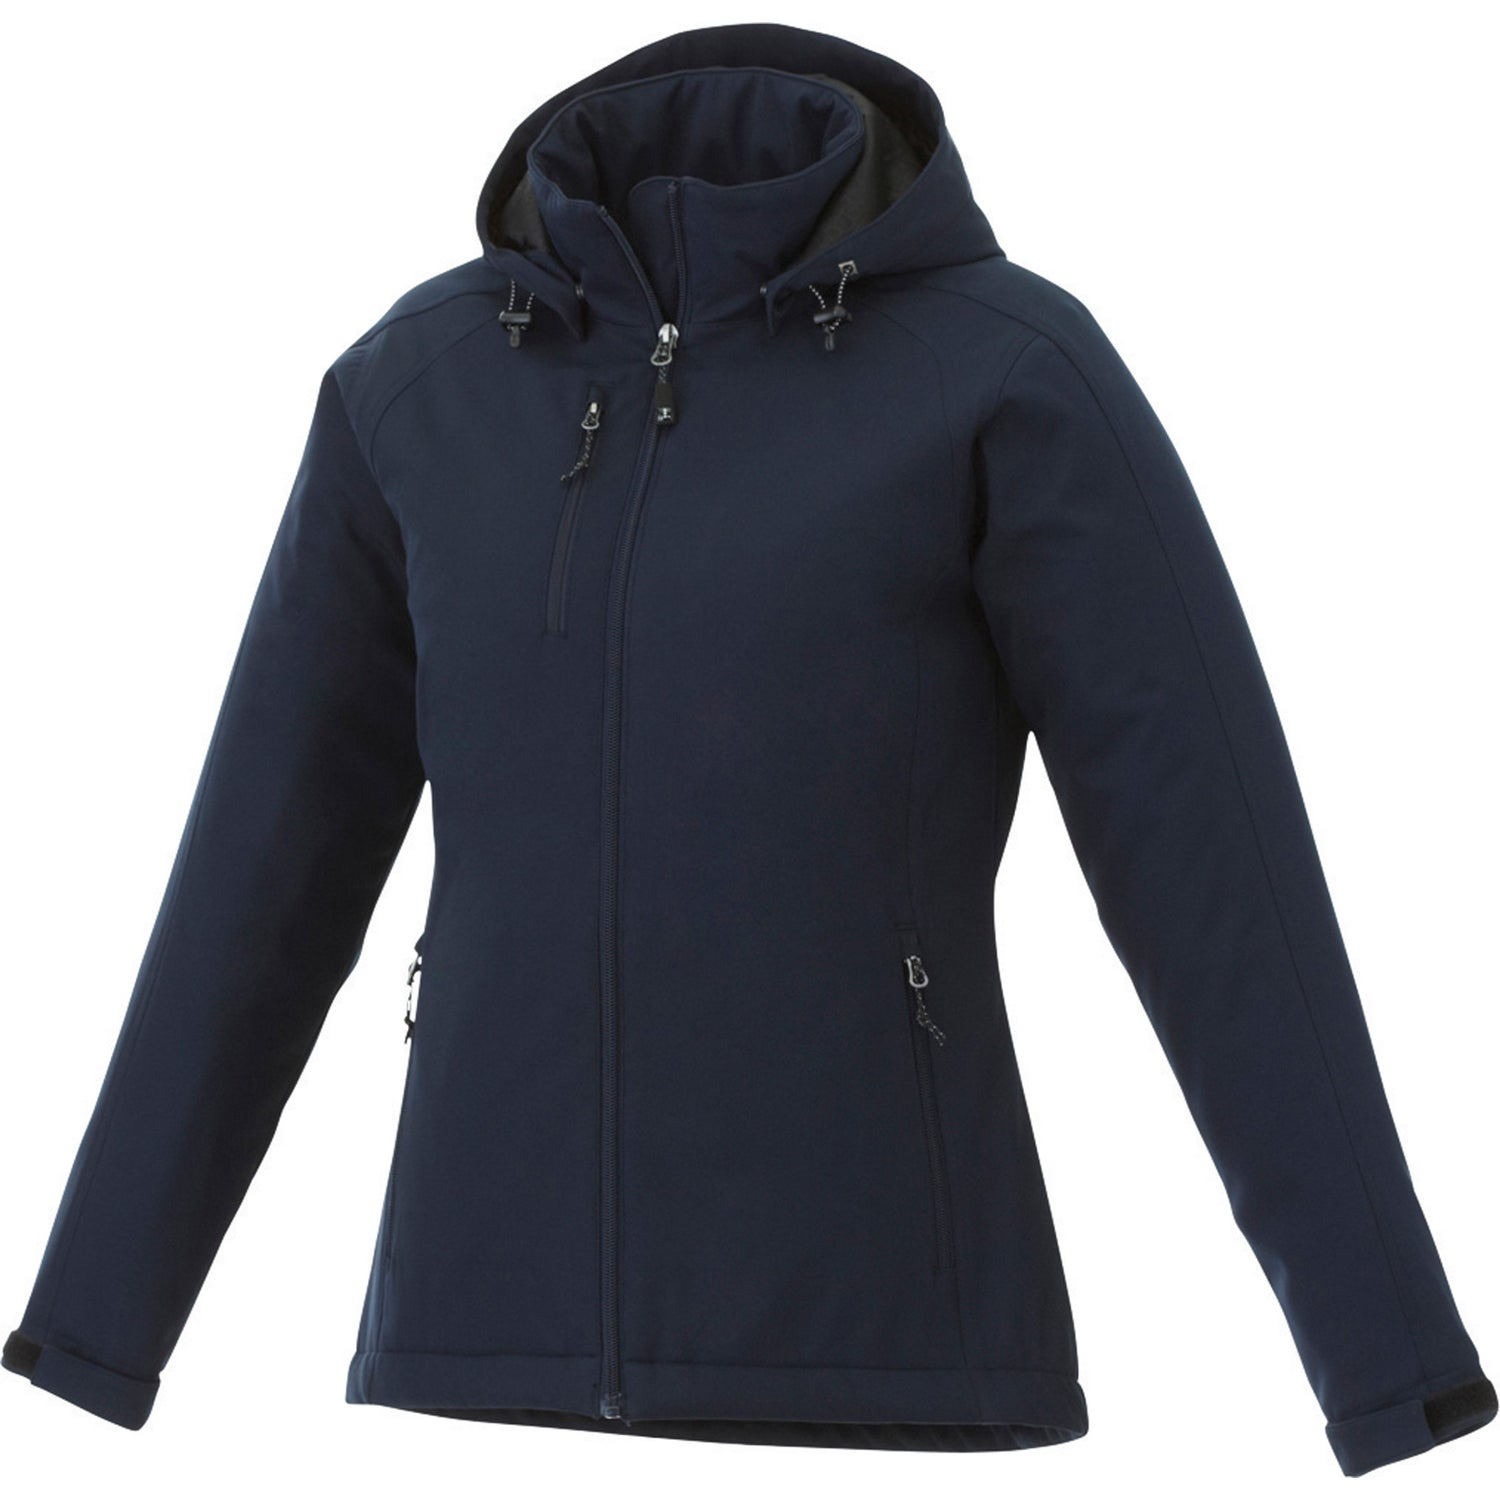 Bryce Insulated Softshell Jacket by TRIMARK (Women's)